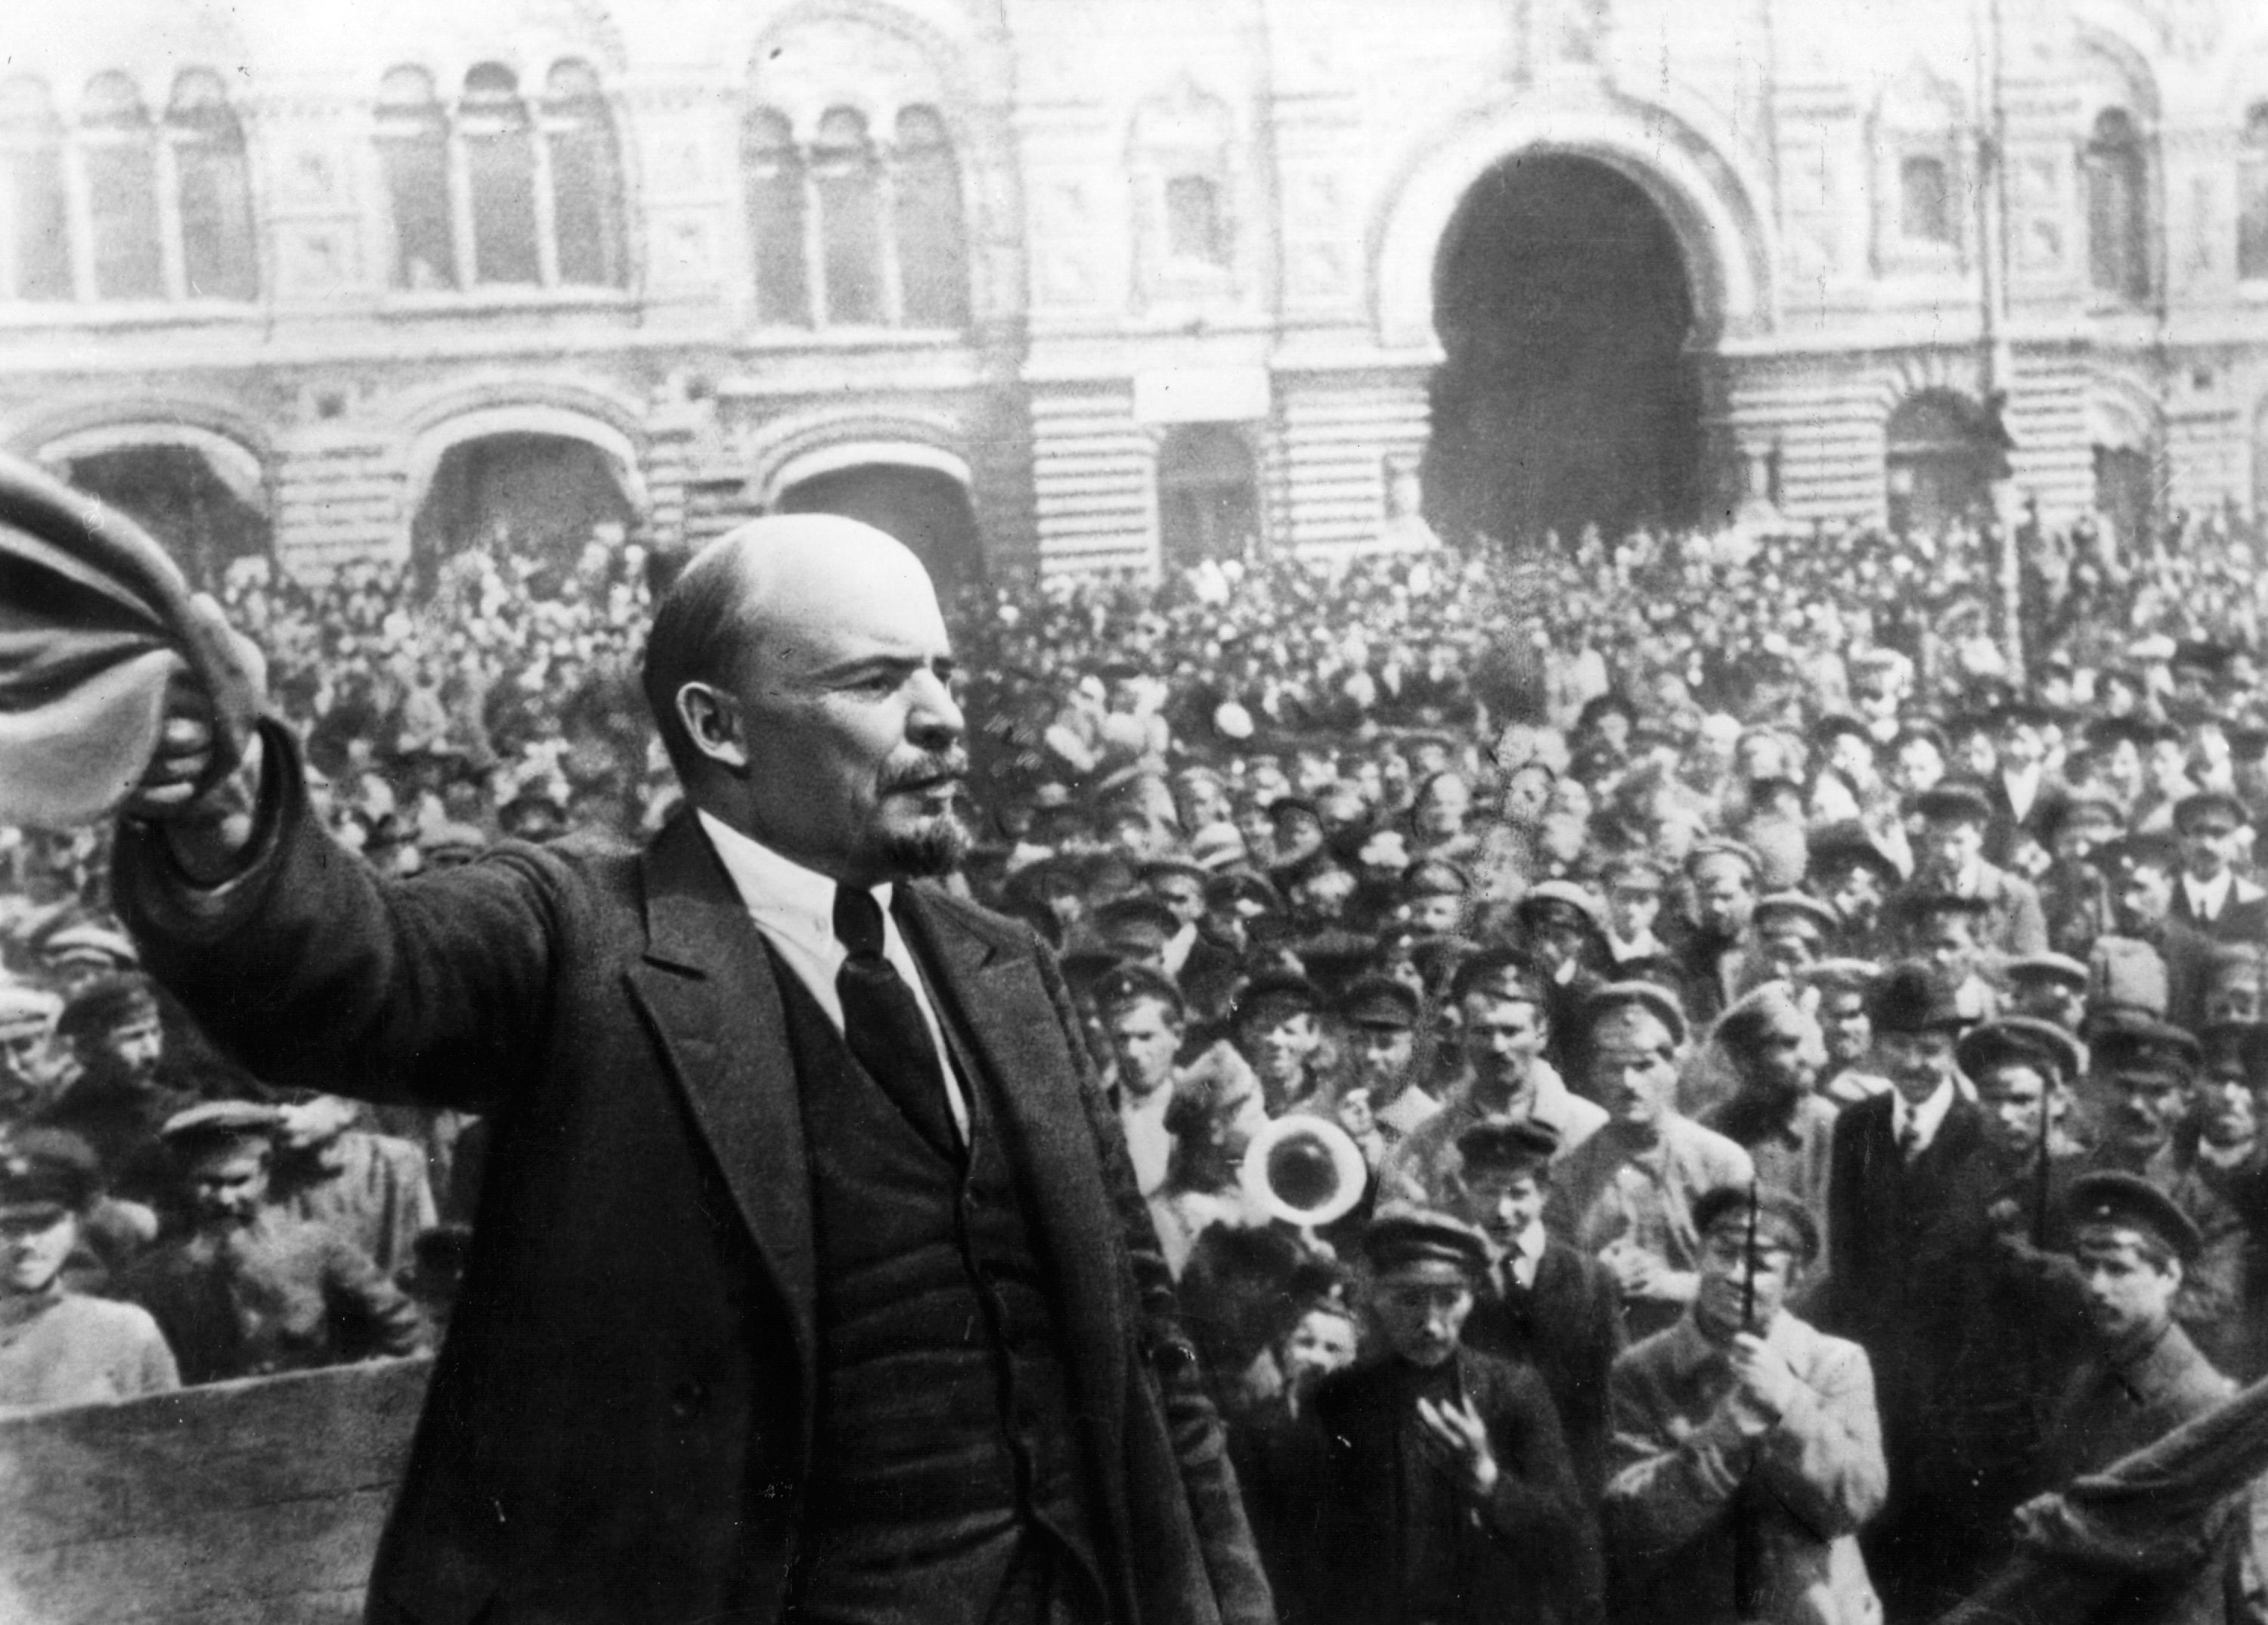 Vladimir Ilyich Lenin (1870 - 1924), Russian revolutionary, making a speech in Moscow. Original Publication: People Disc - HG0194 (Photo by Keystone/Getty Images)